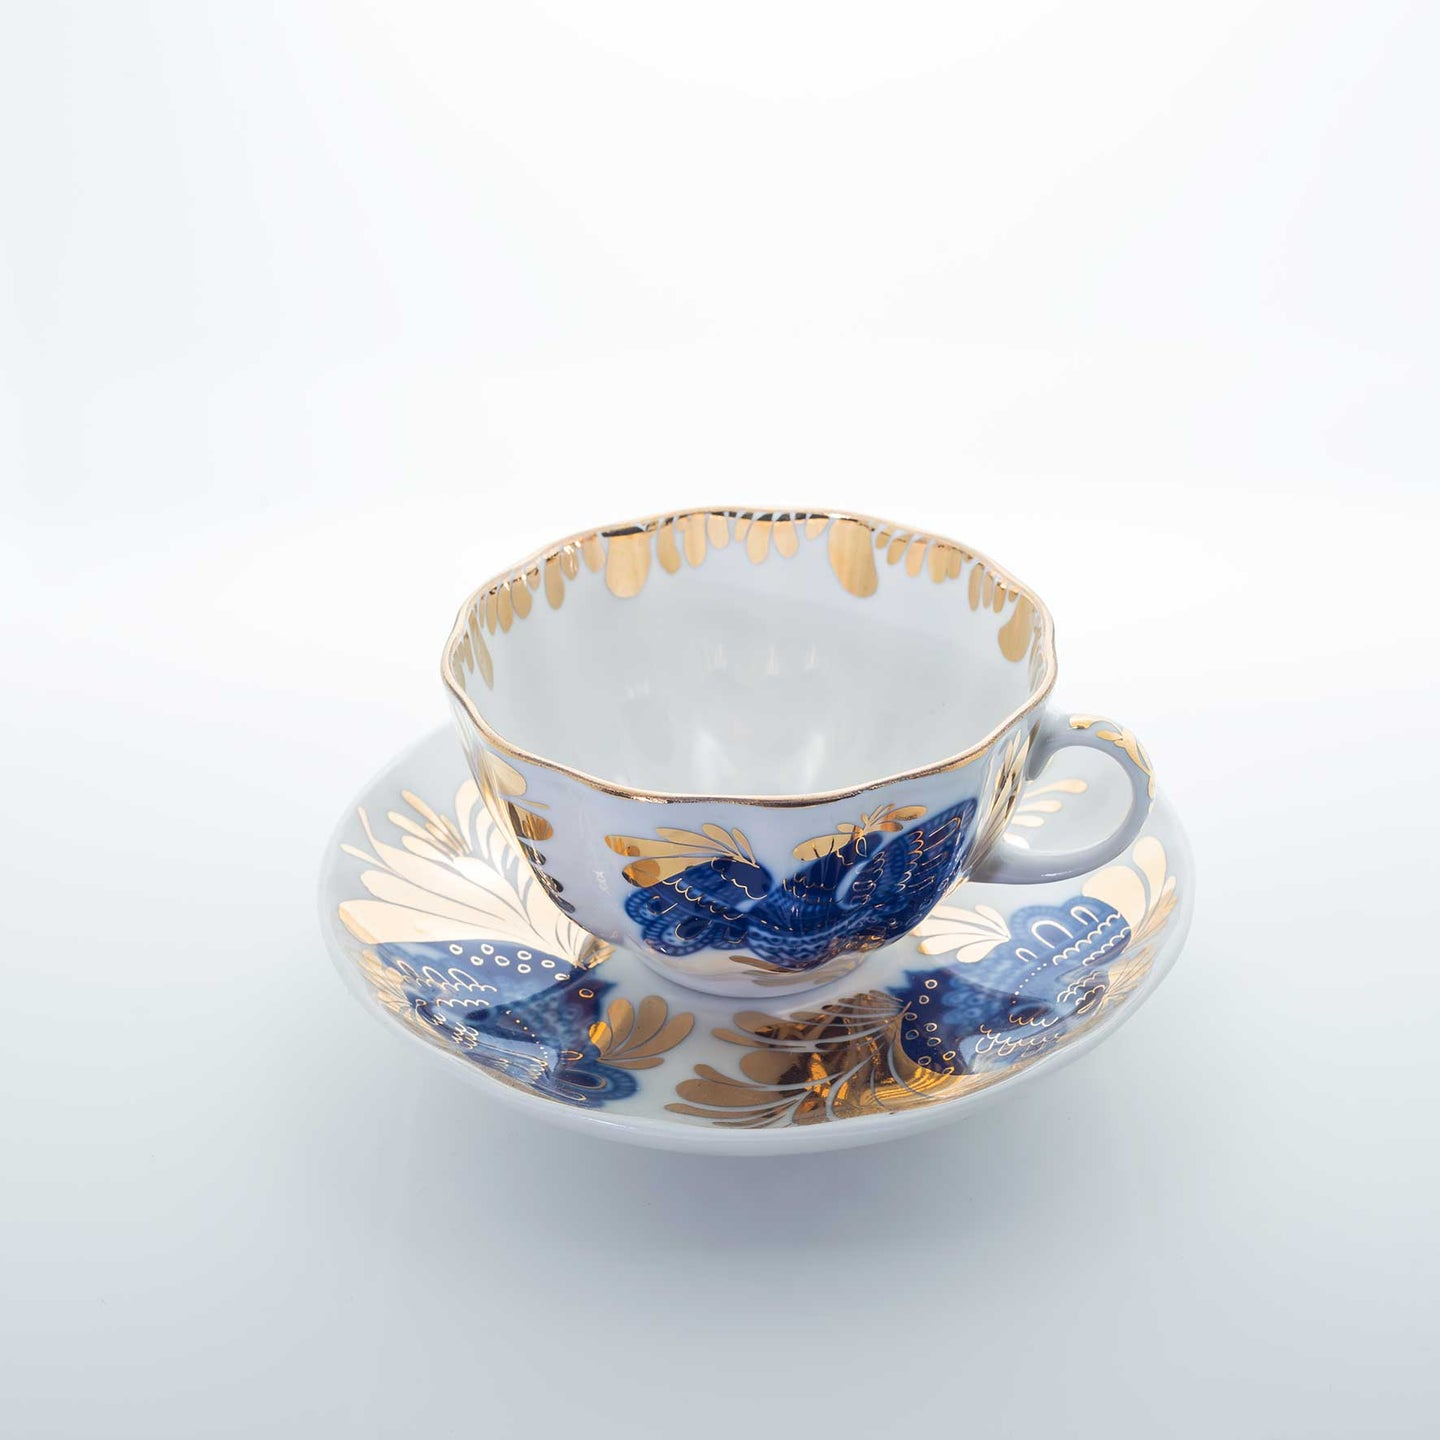 Refresh Moment Imperial Porcelain St. Petersburg 1744 Golden Blue Bloom Teacup and Saucer